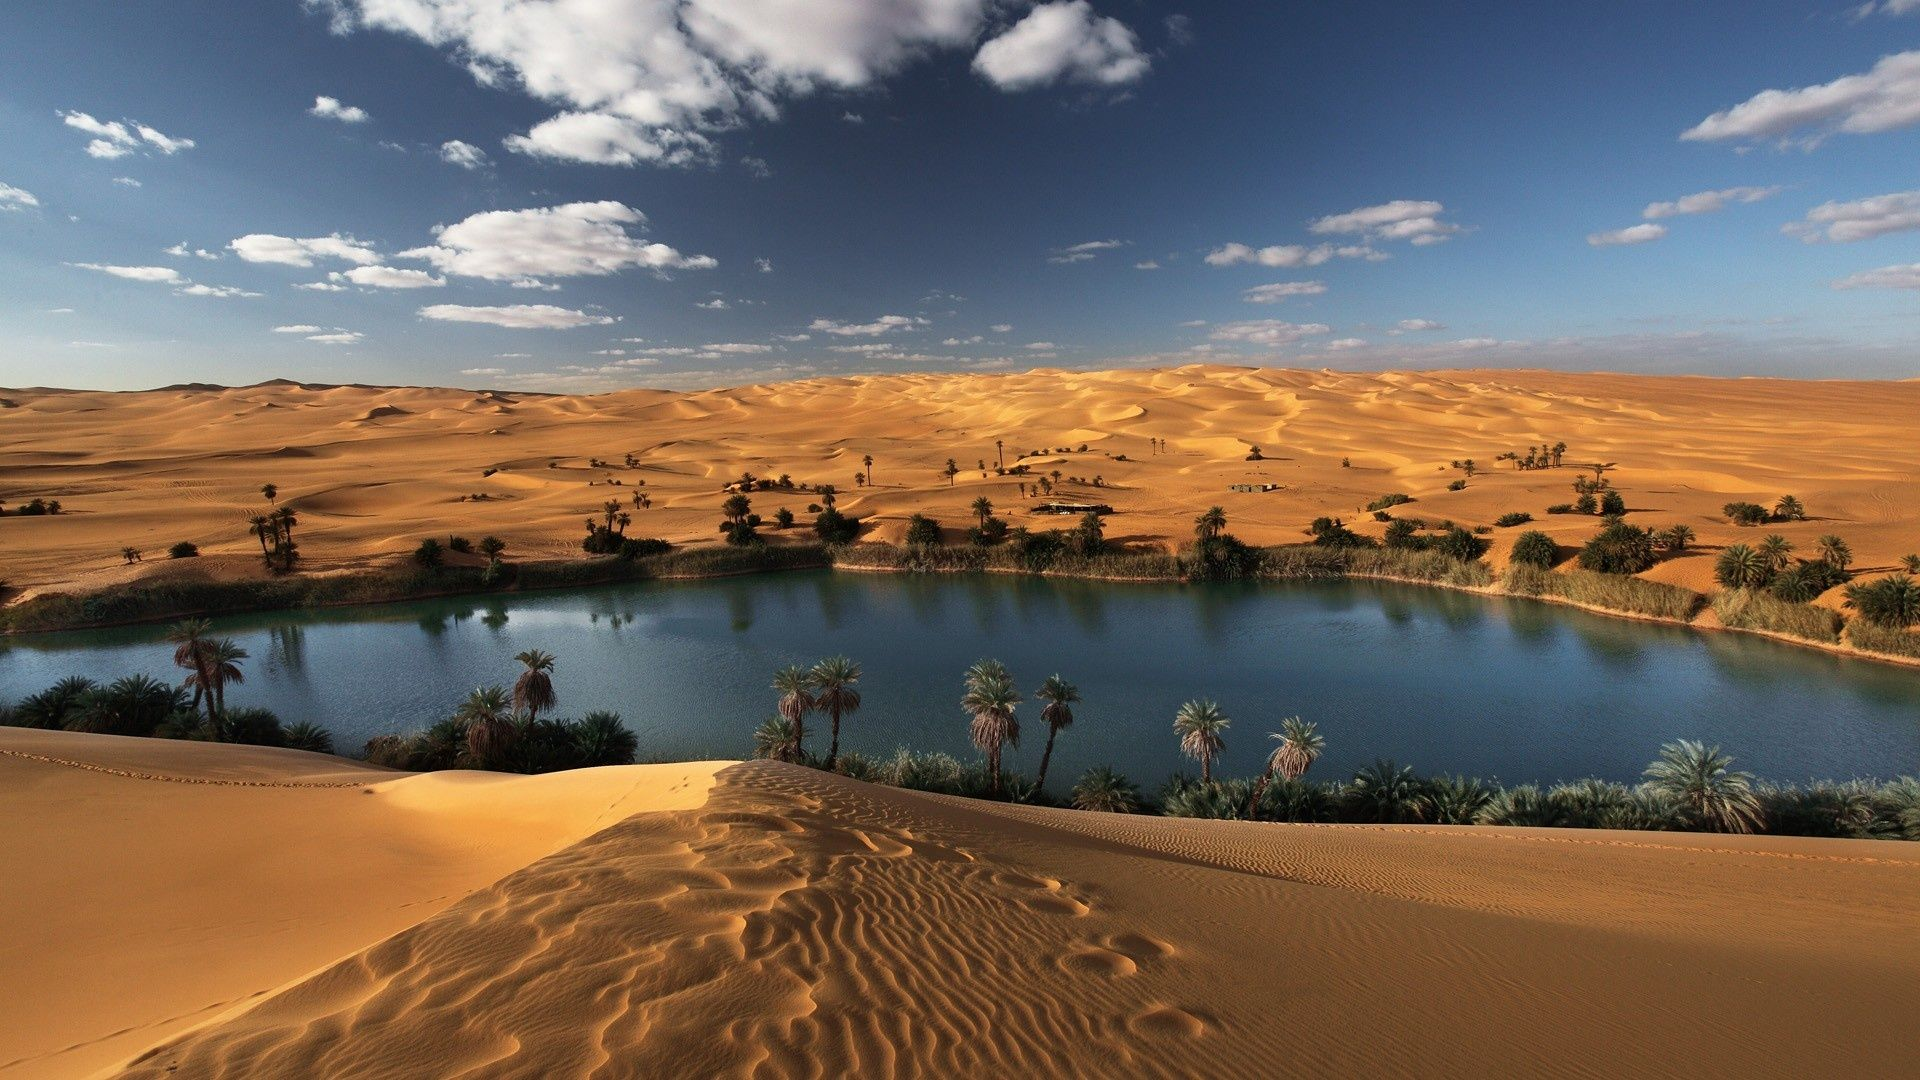 oasis libyan desert hd desktop wallpaper images and photos desertos o sis pinterest oasis. Black Bedroom Furniture Sets. Home Design Ideas